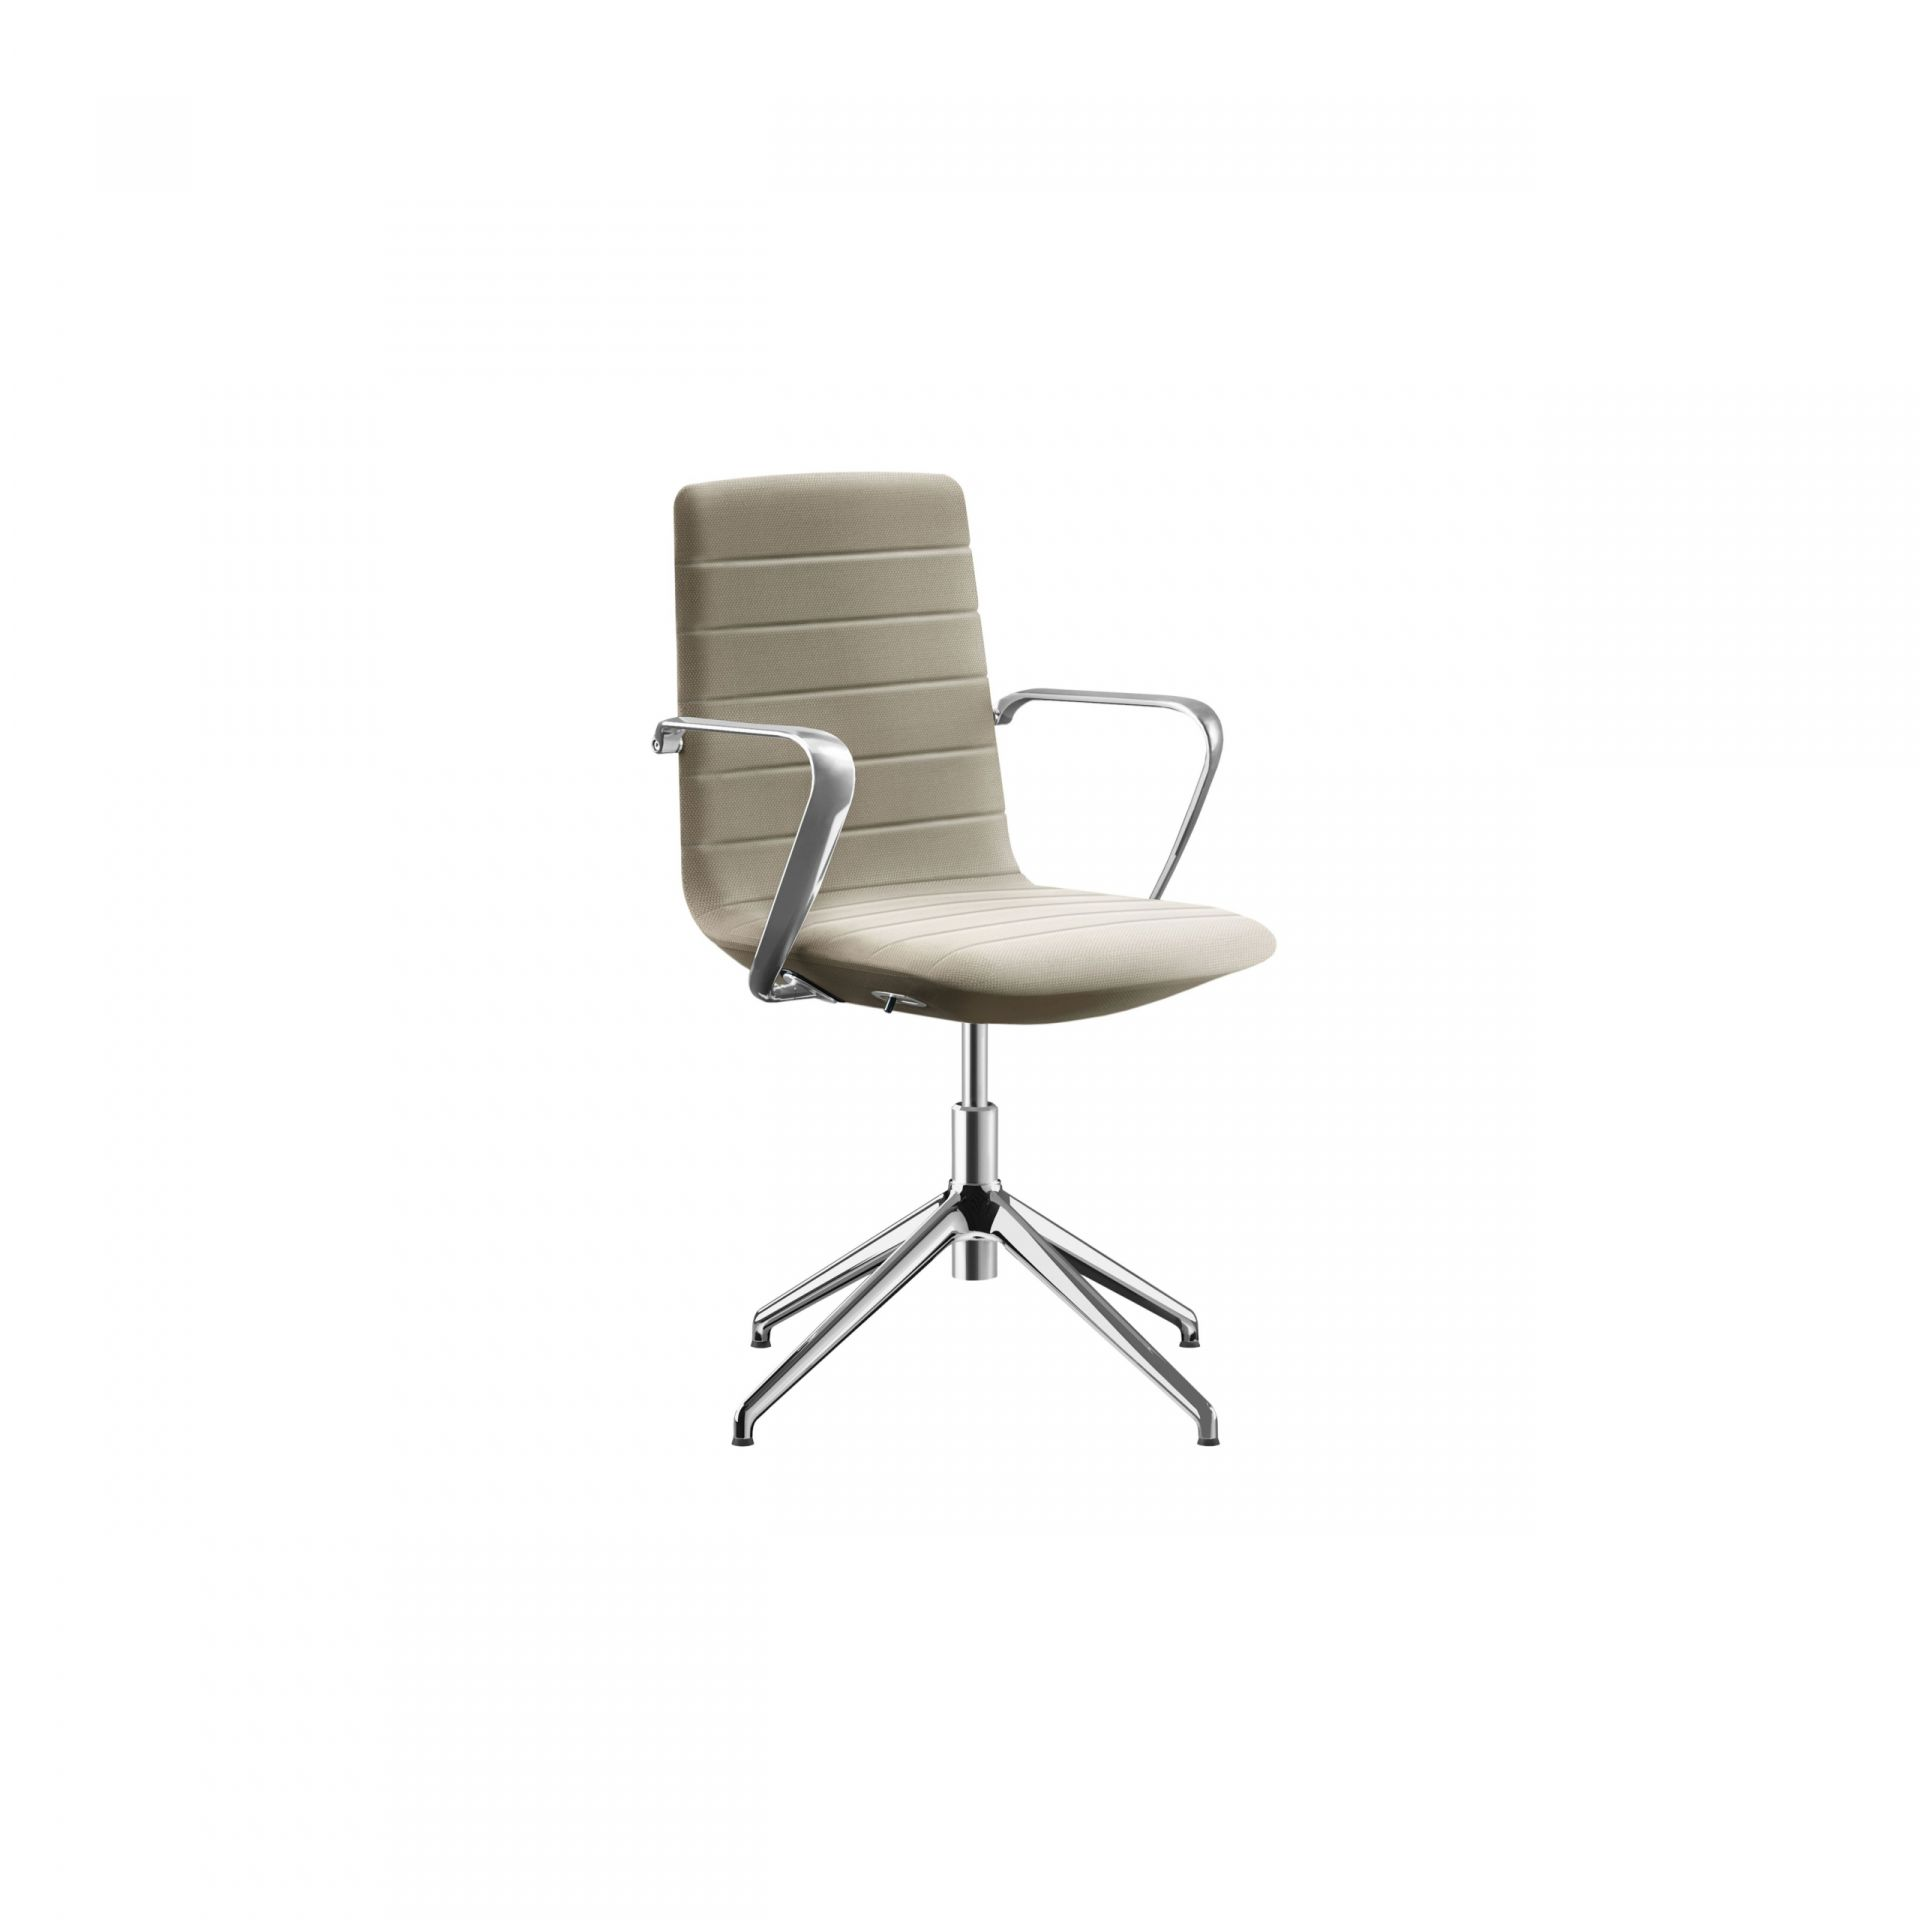 Favor Chair with swivel base product image 4